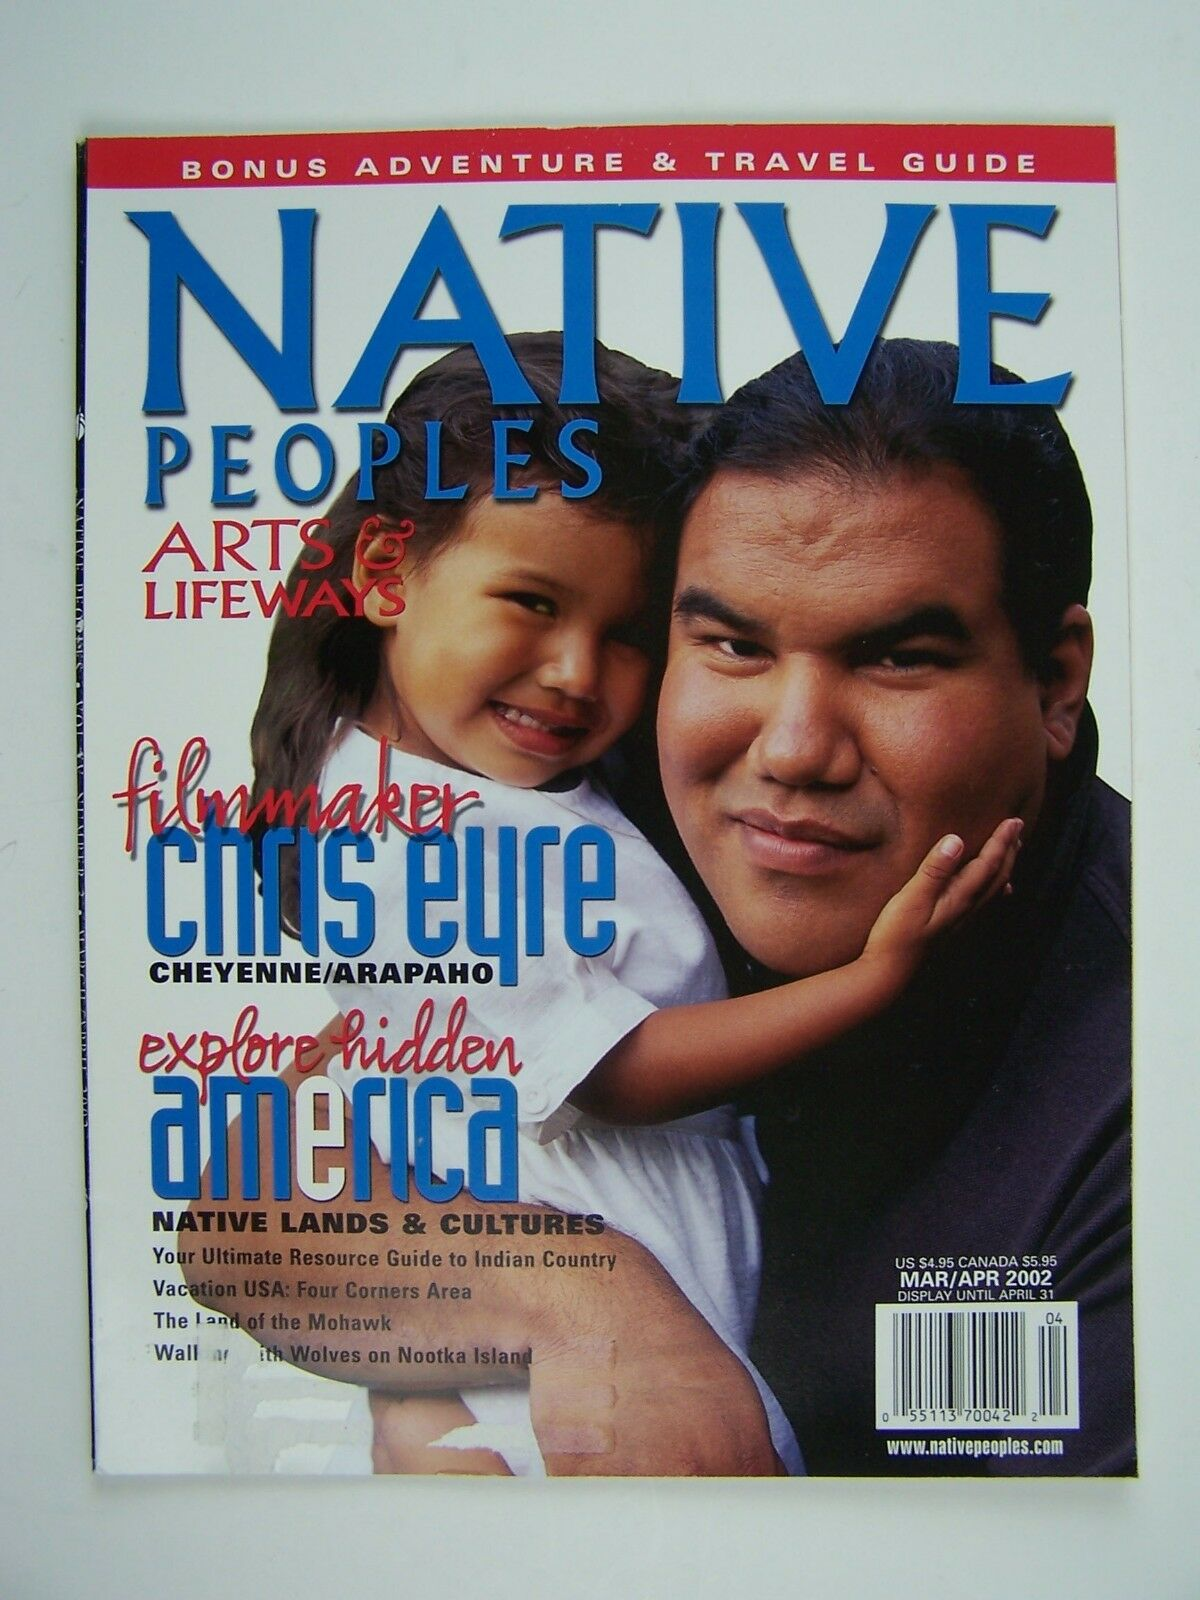 Native Peoples Arts & Lifeways Magazine Vol XV Number 3